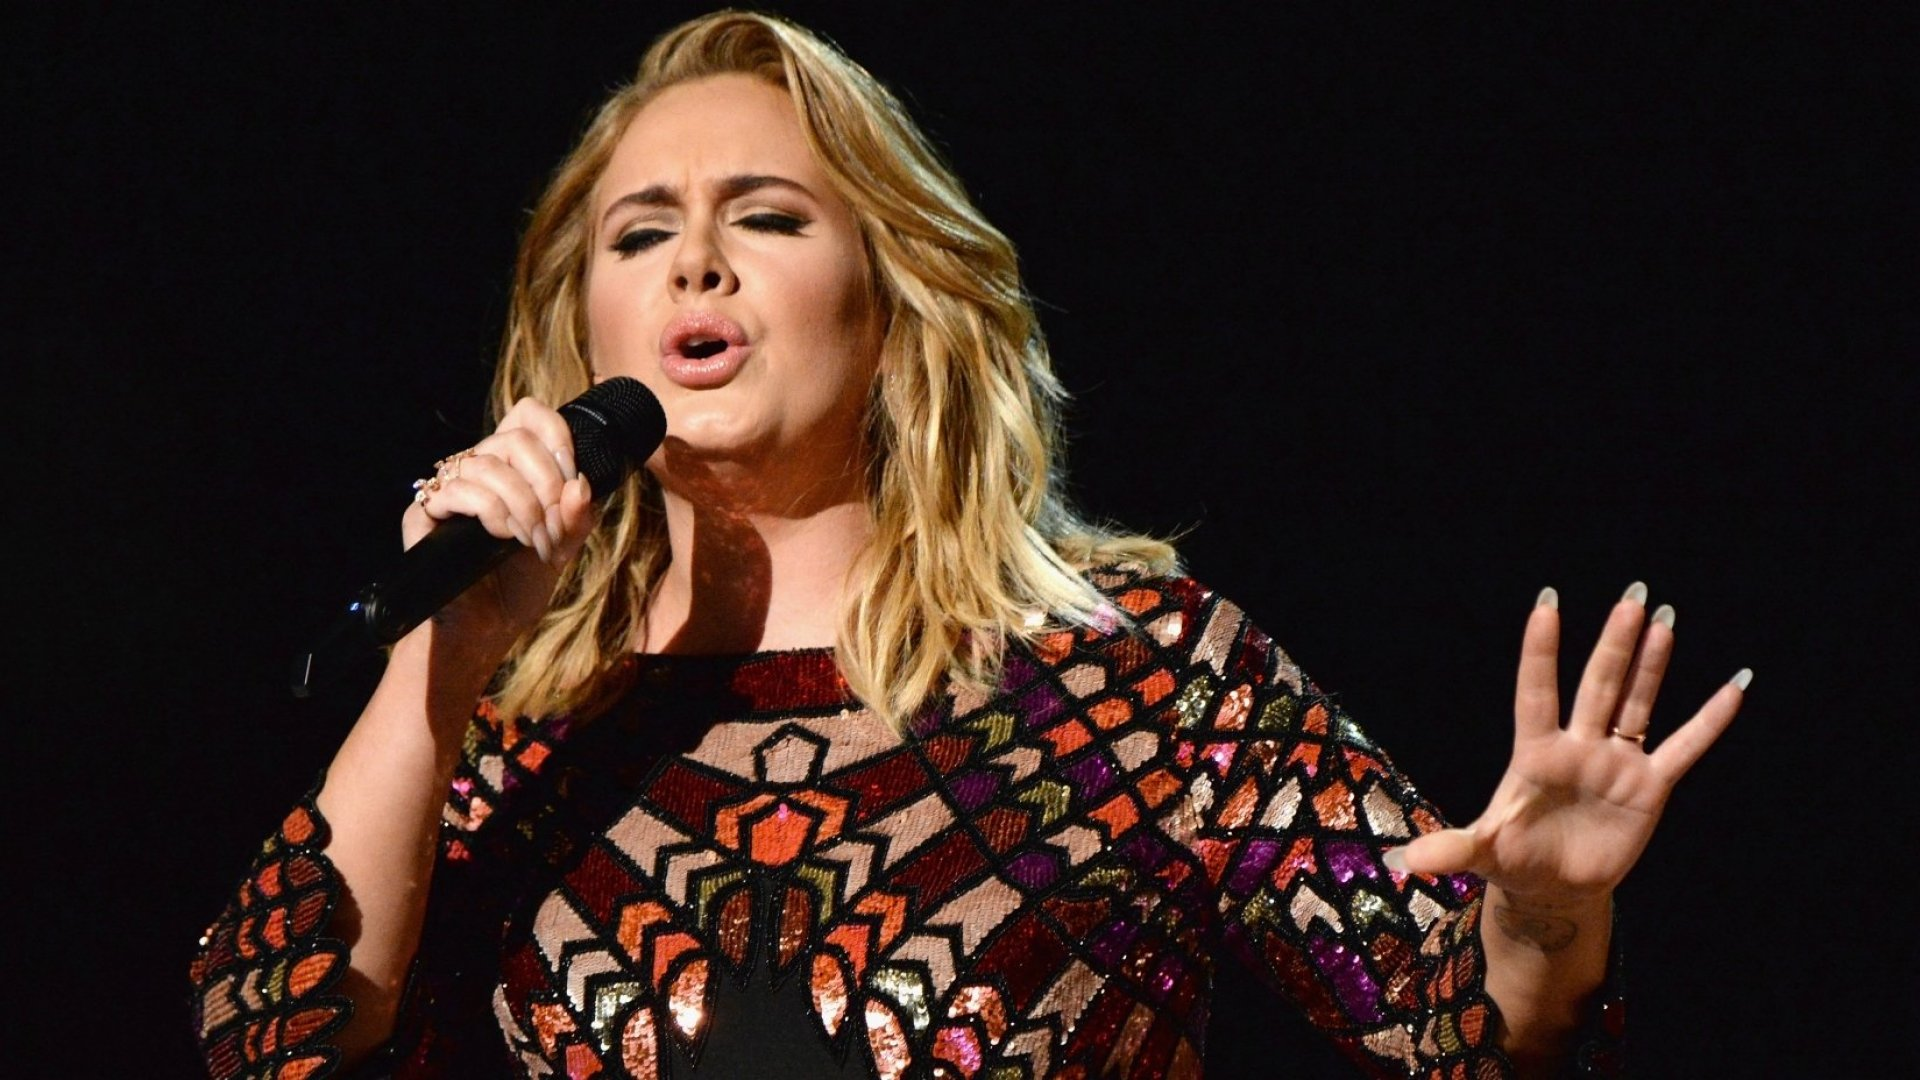 Adele Just Told Fans She Might Never Tour Again. Here's Why It's a Brilliant Leadership Lesson